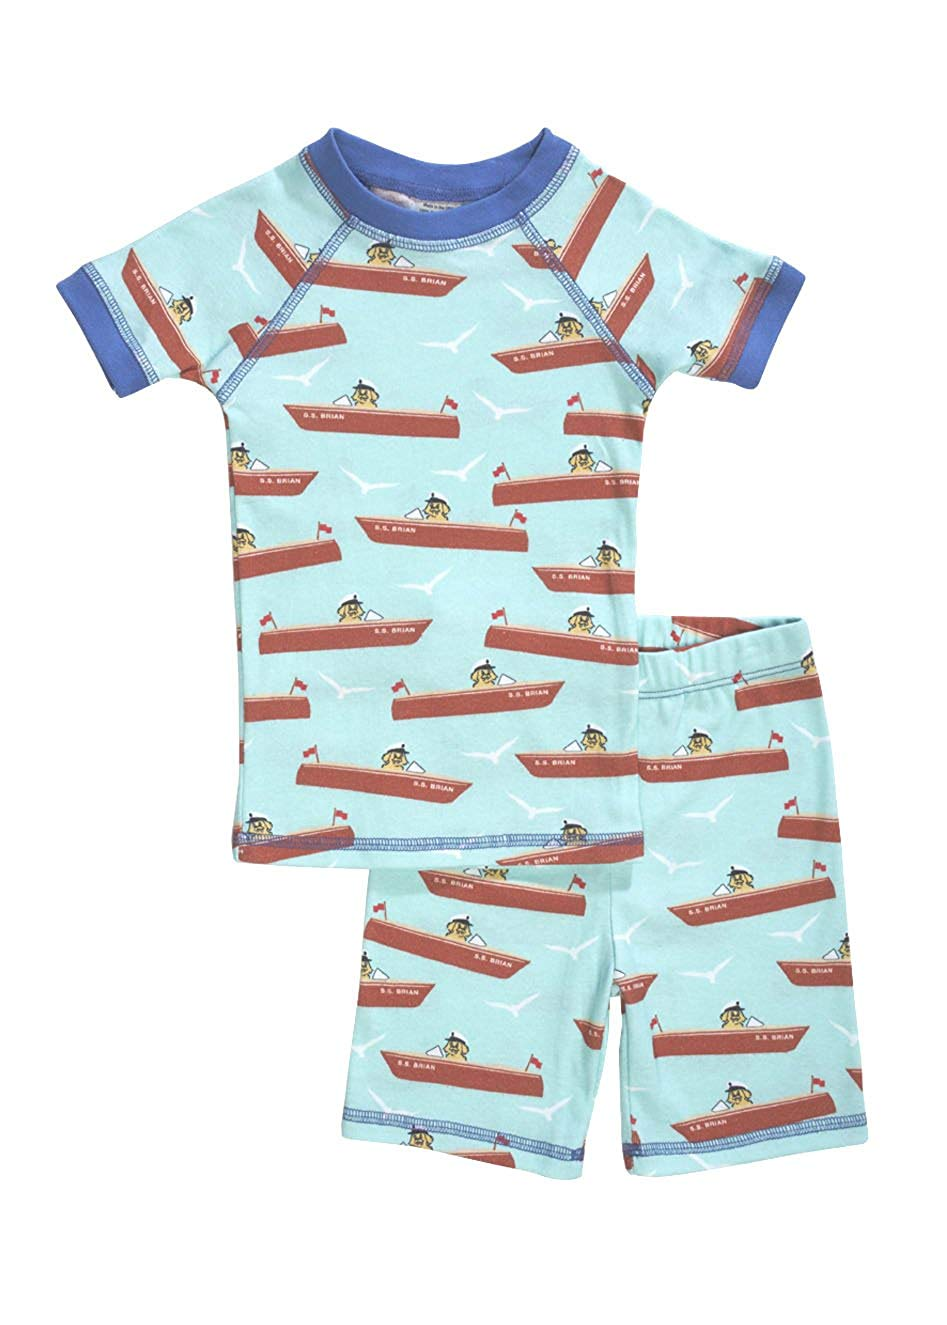 Brian the Pekingese Boys 100% Organic Cotton Short Sleeve & Shorts Pajamas